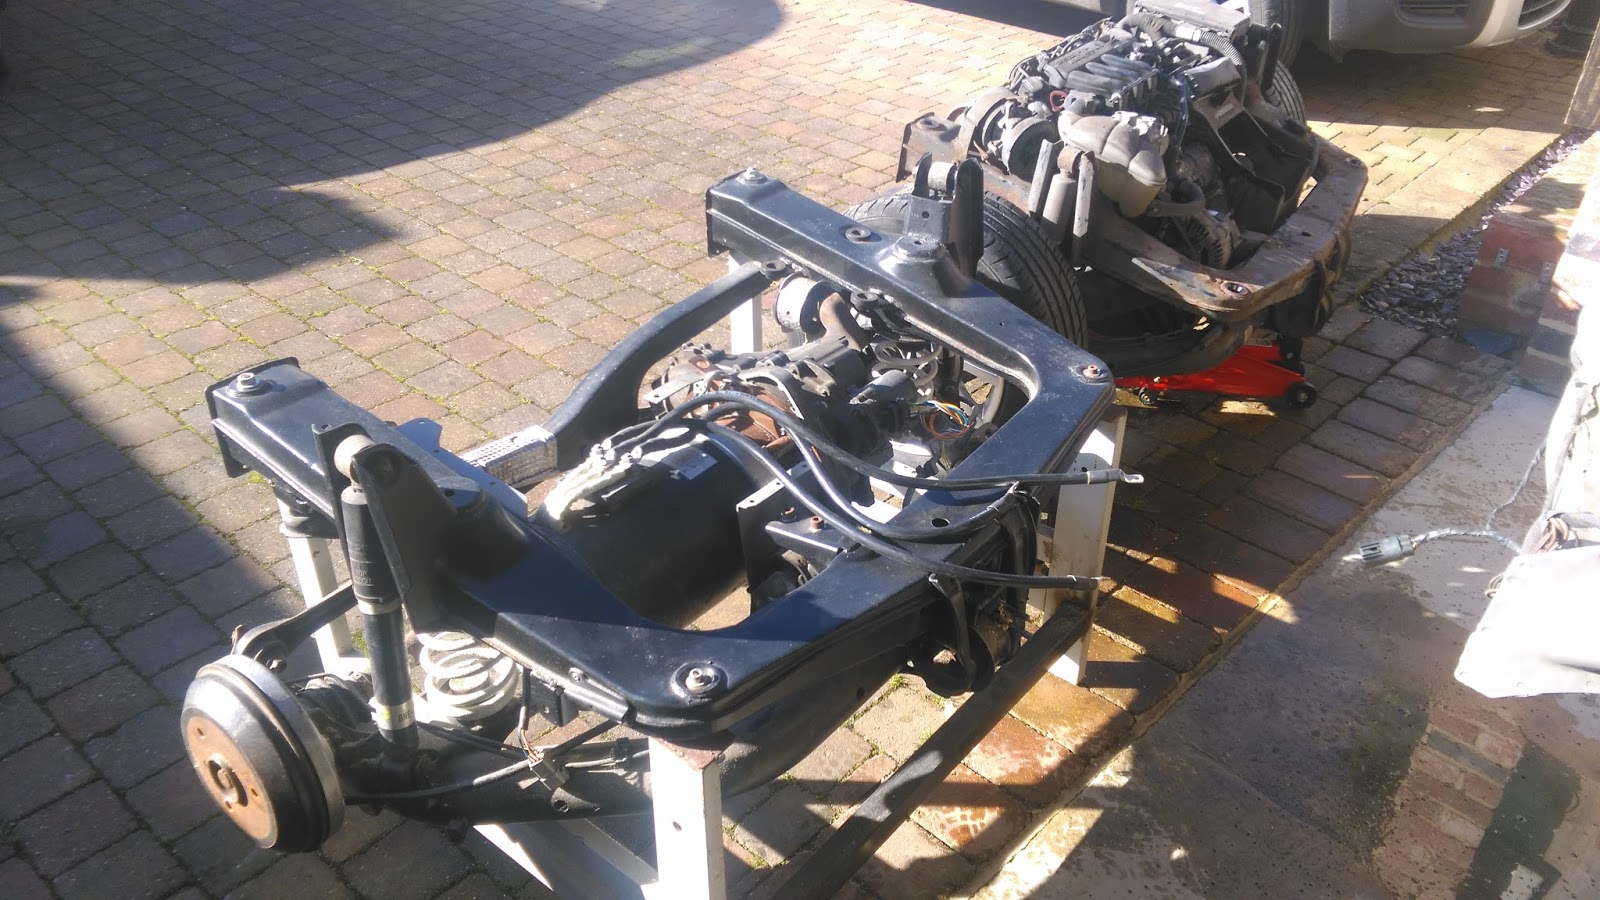 Smart Roadster - Conversion to electric car: The EV sub-frame is in!